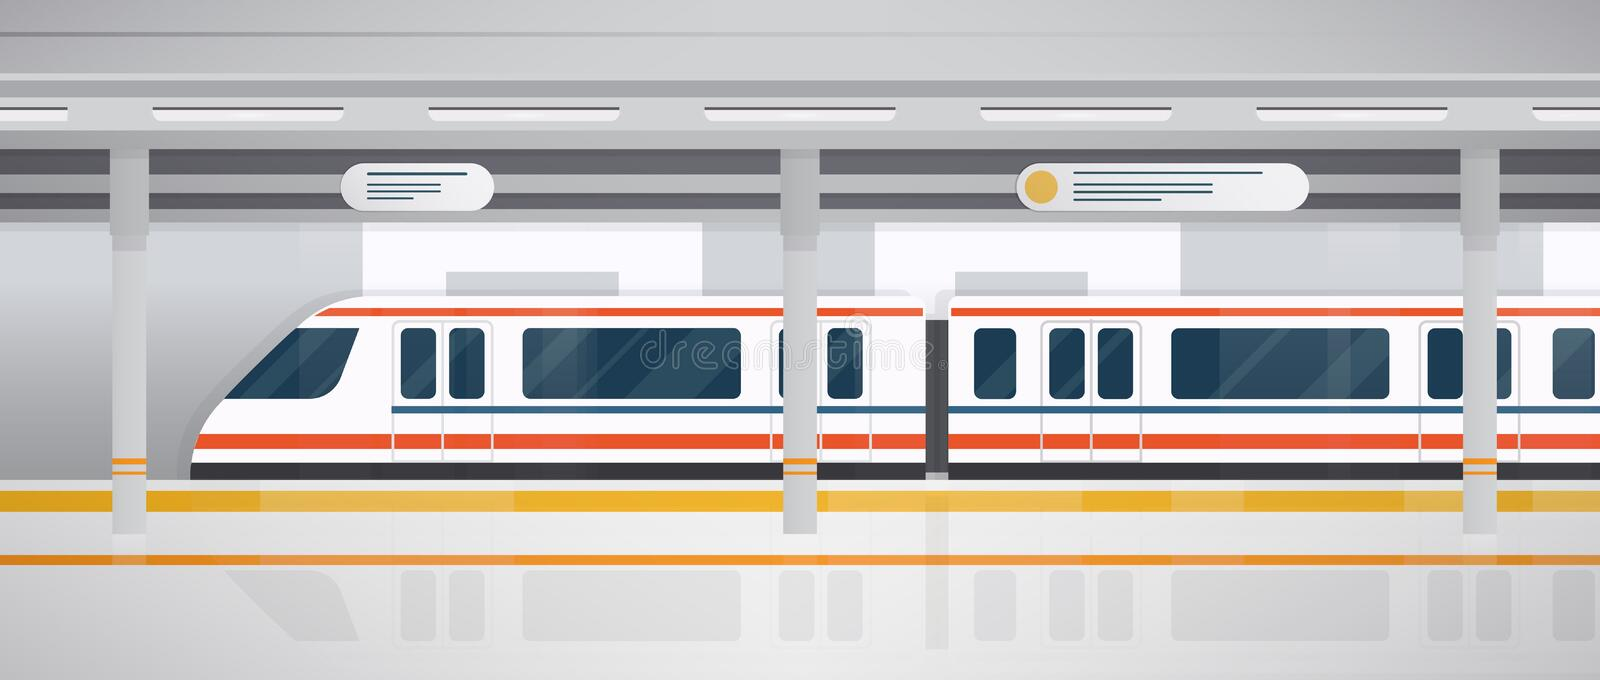 Subway, underground platform with modern train. Horizontal colorful vector illustration in flat style. Subway, underground platform with modern train royalty free illustration